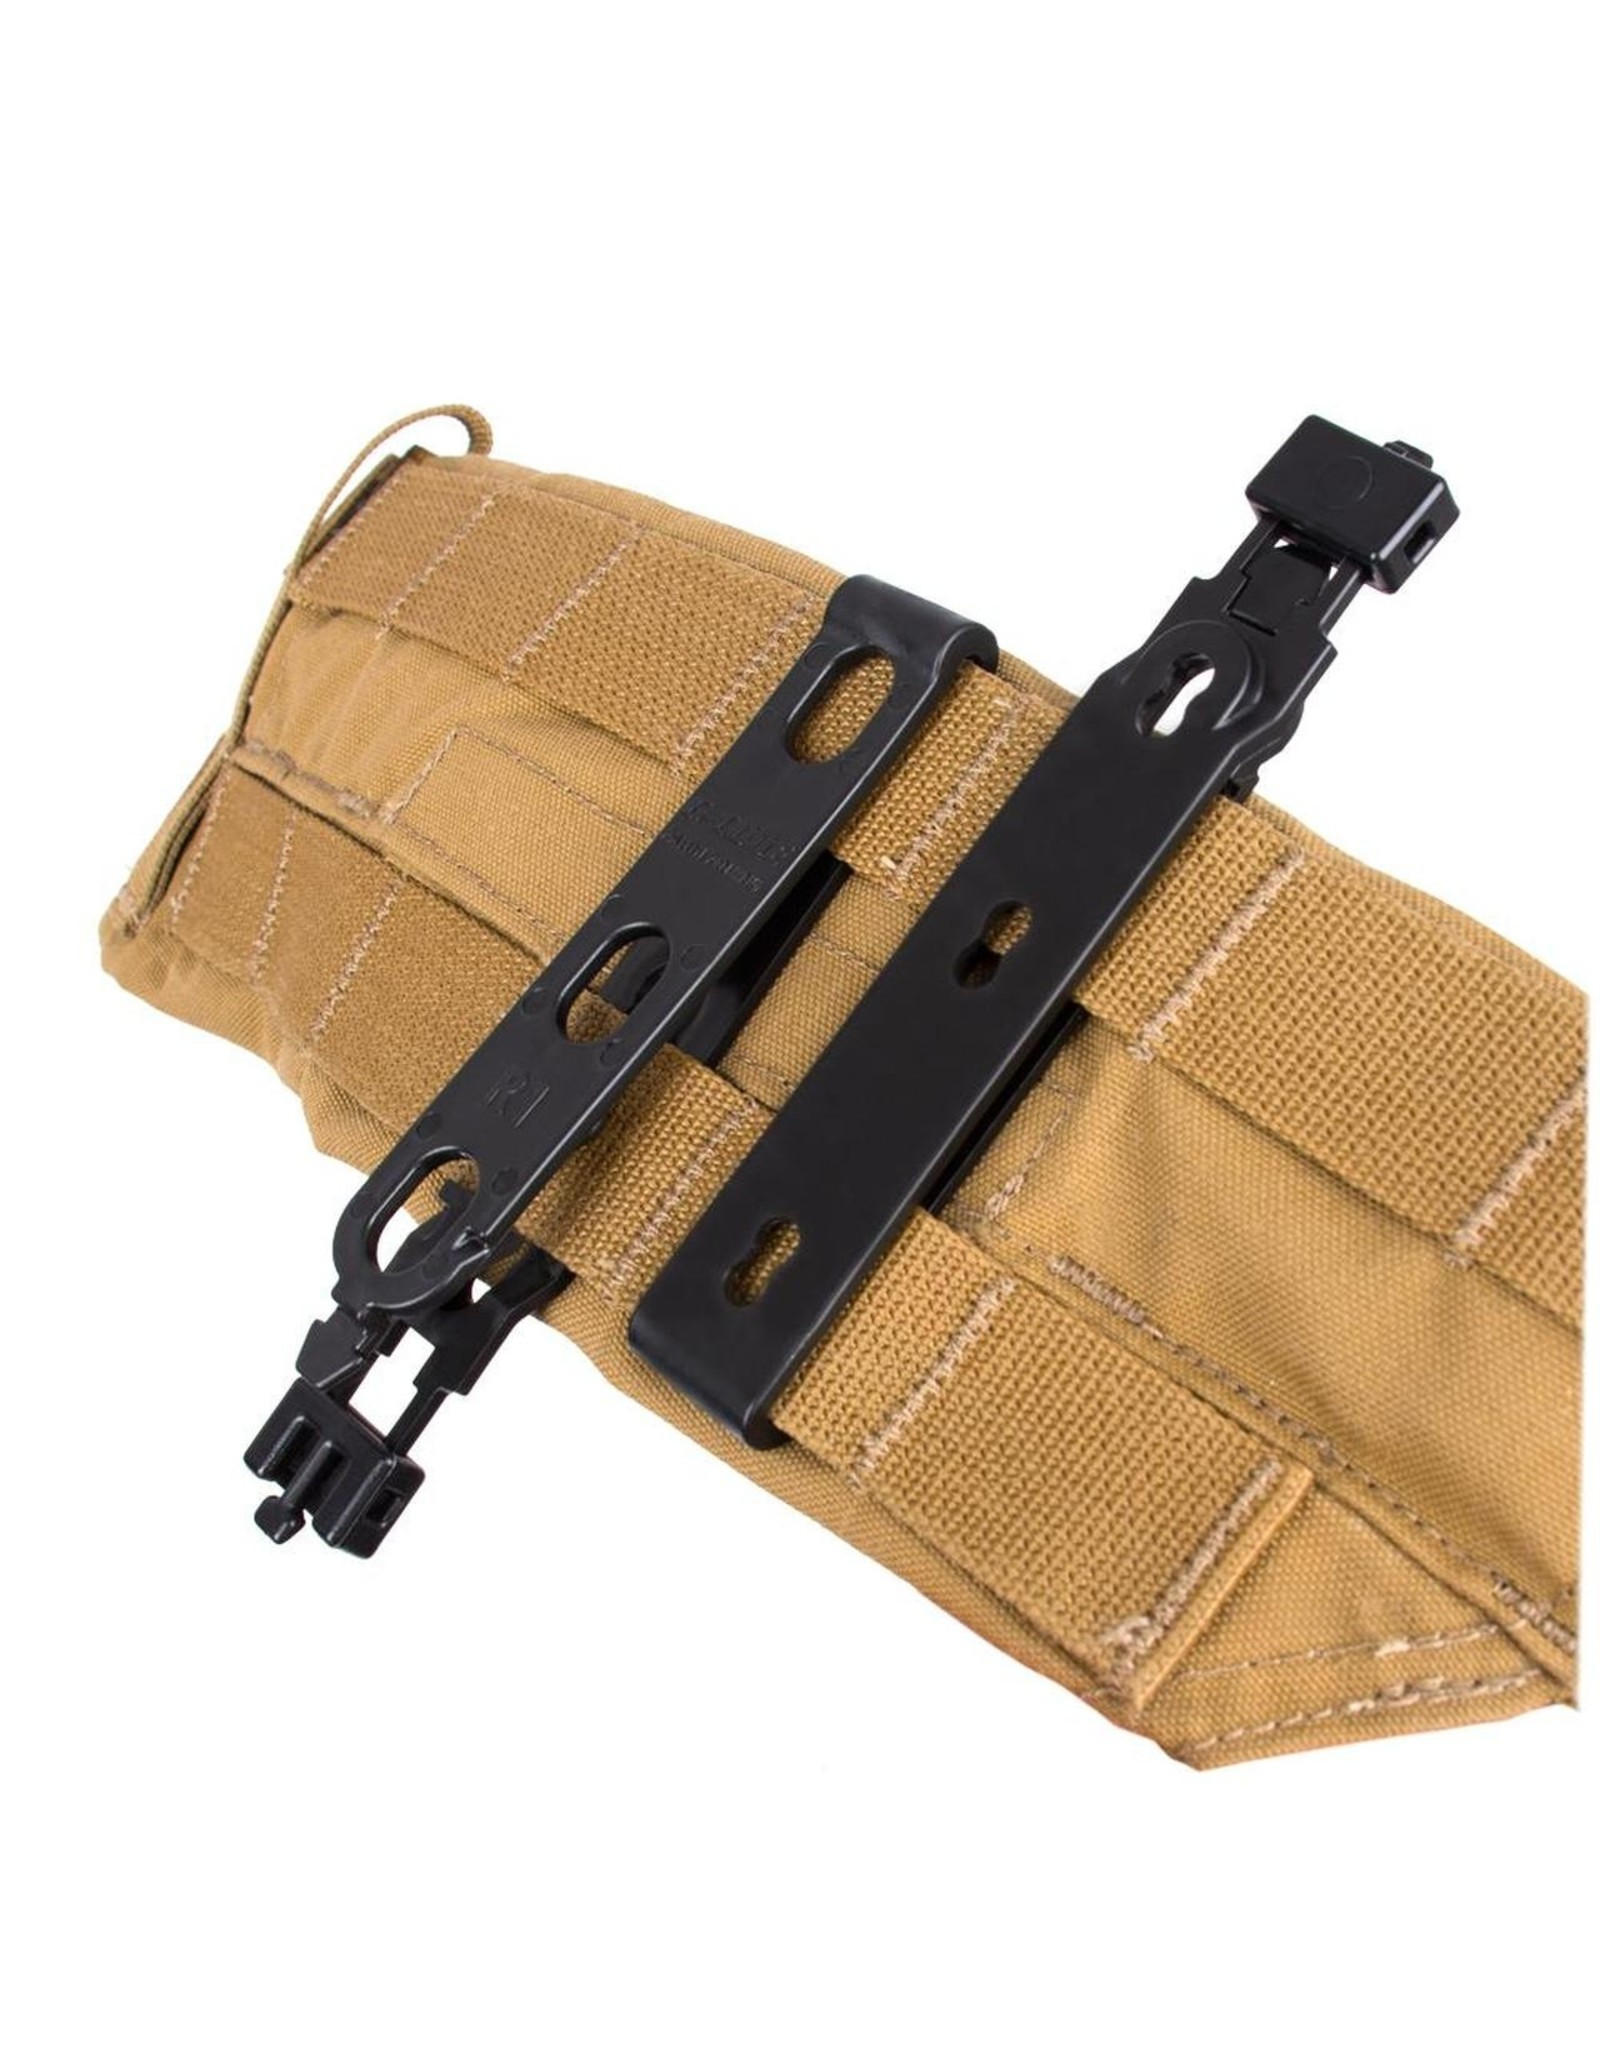 G-CODE R1 MOLLE CLIPS (PAIR)